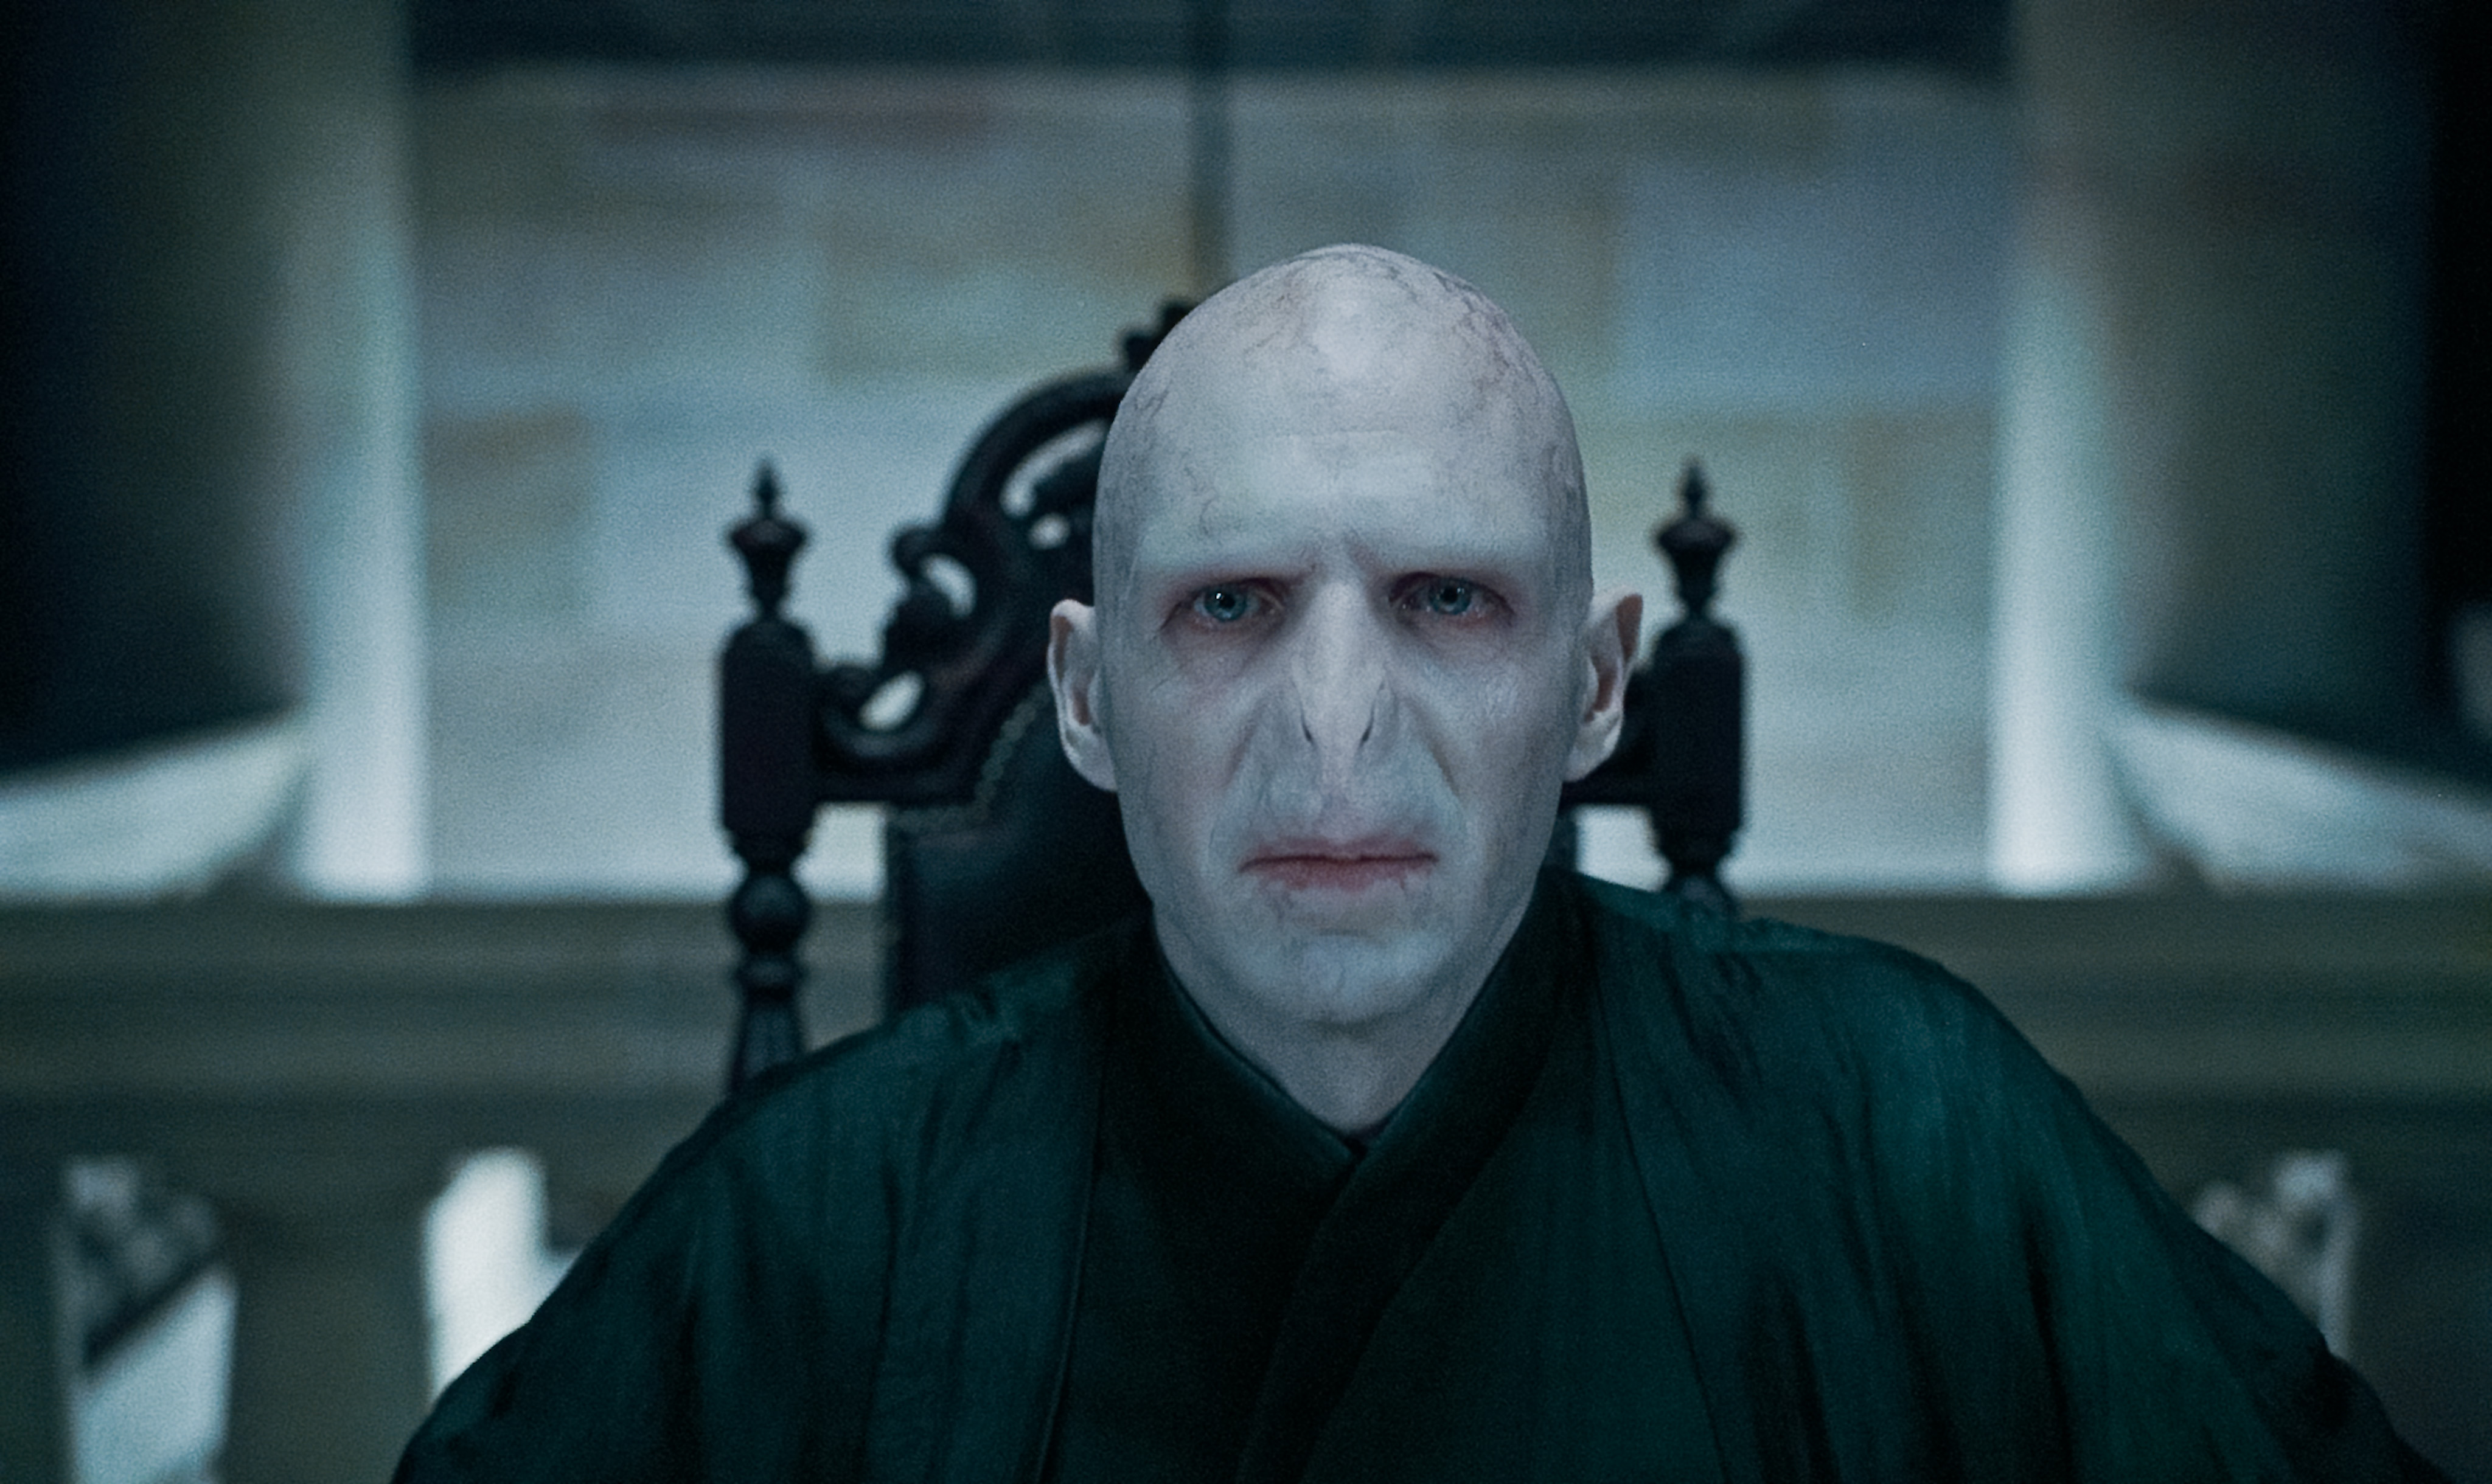 http://mattsmoviethoughts.files.wordpress.com/2011/07/harry-potter-deathly-hallows-voldemort.jpg